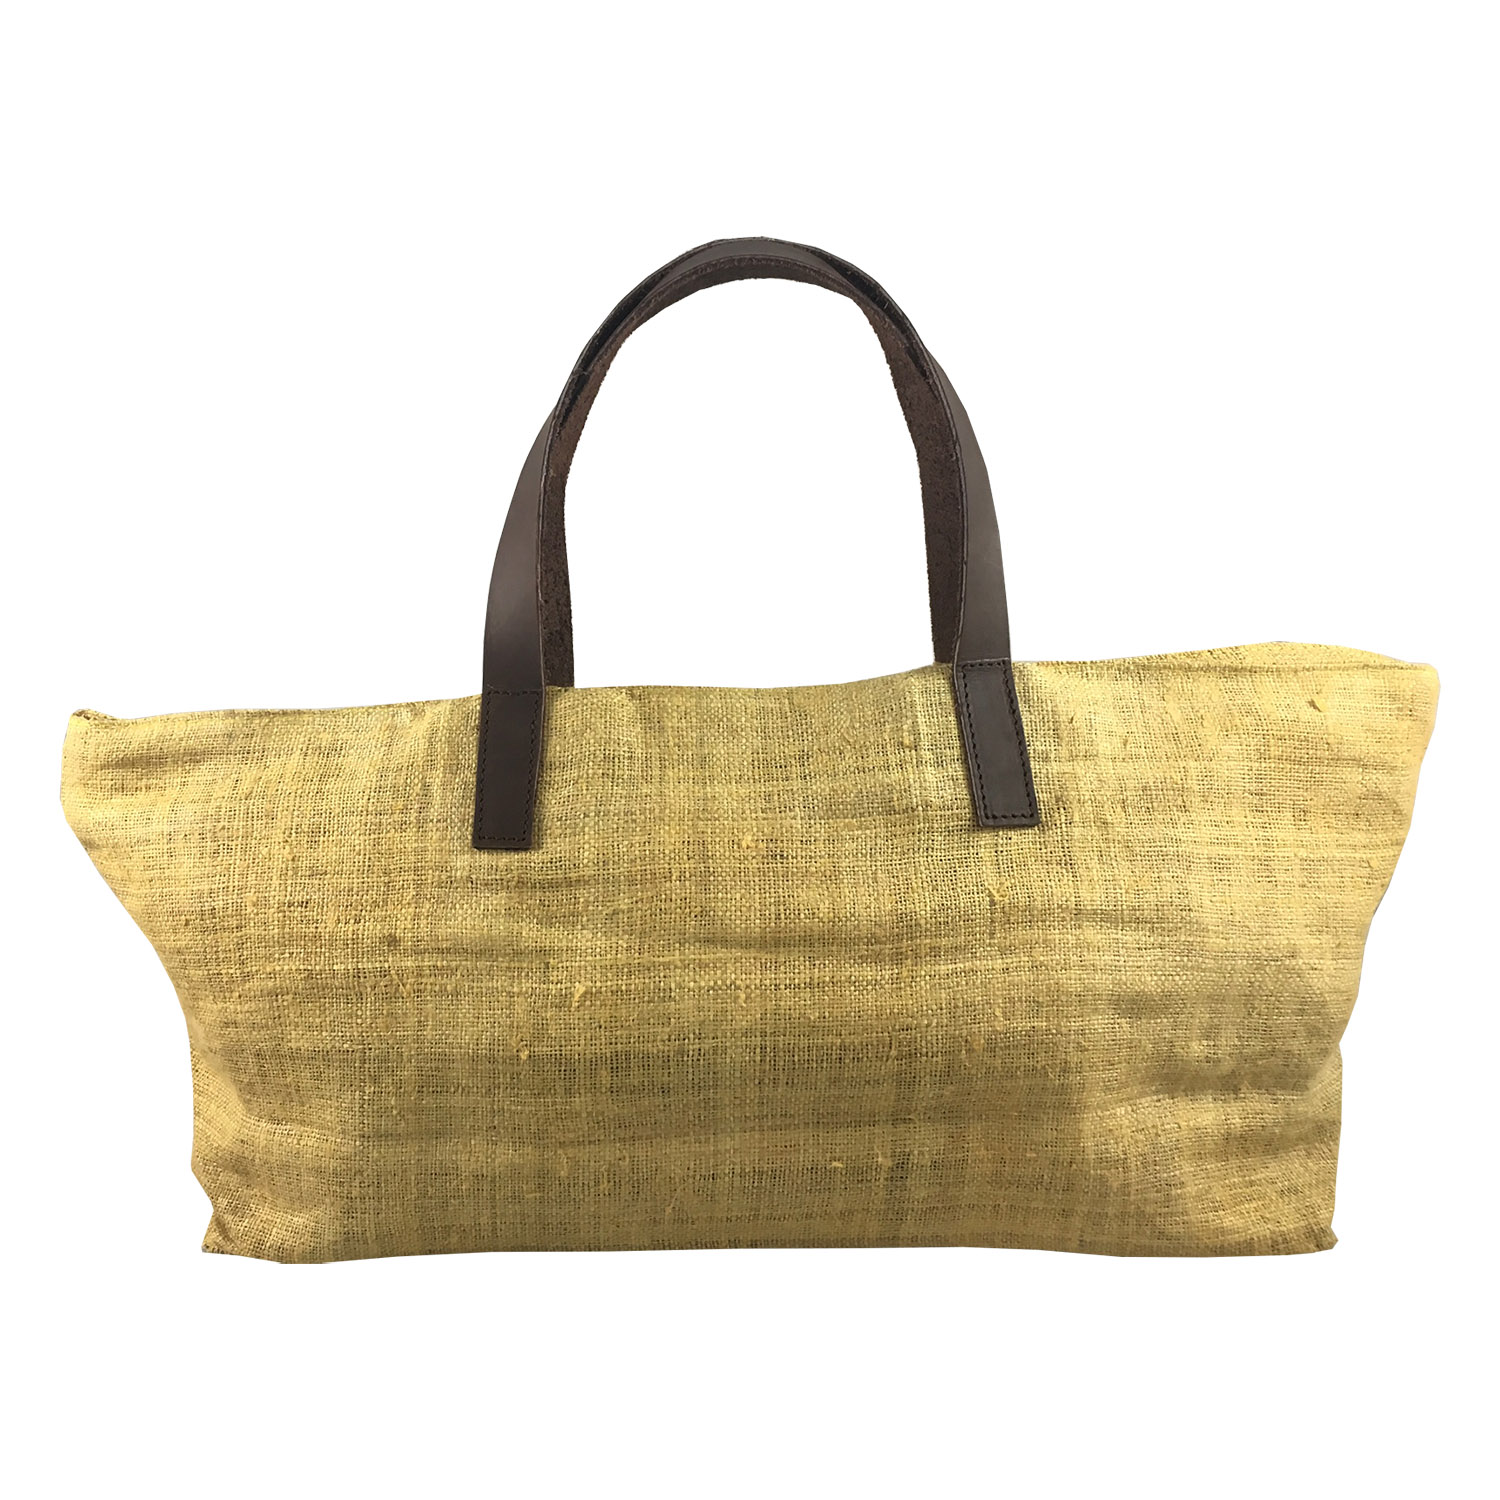 Hemp handbags from Thailand